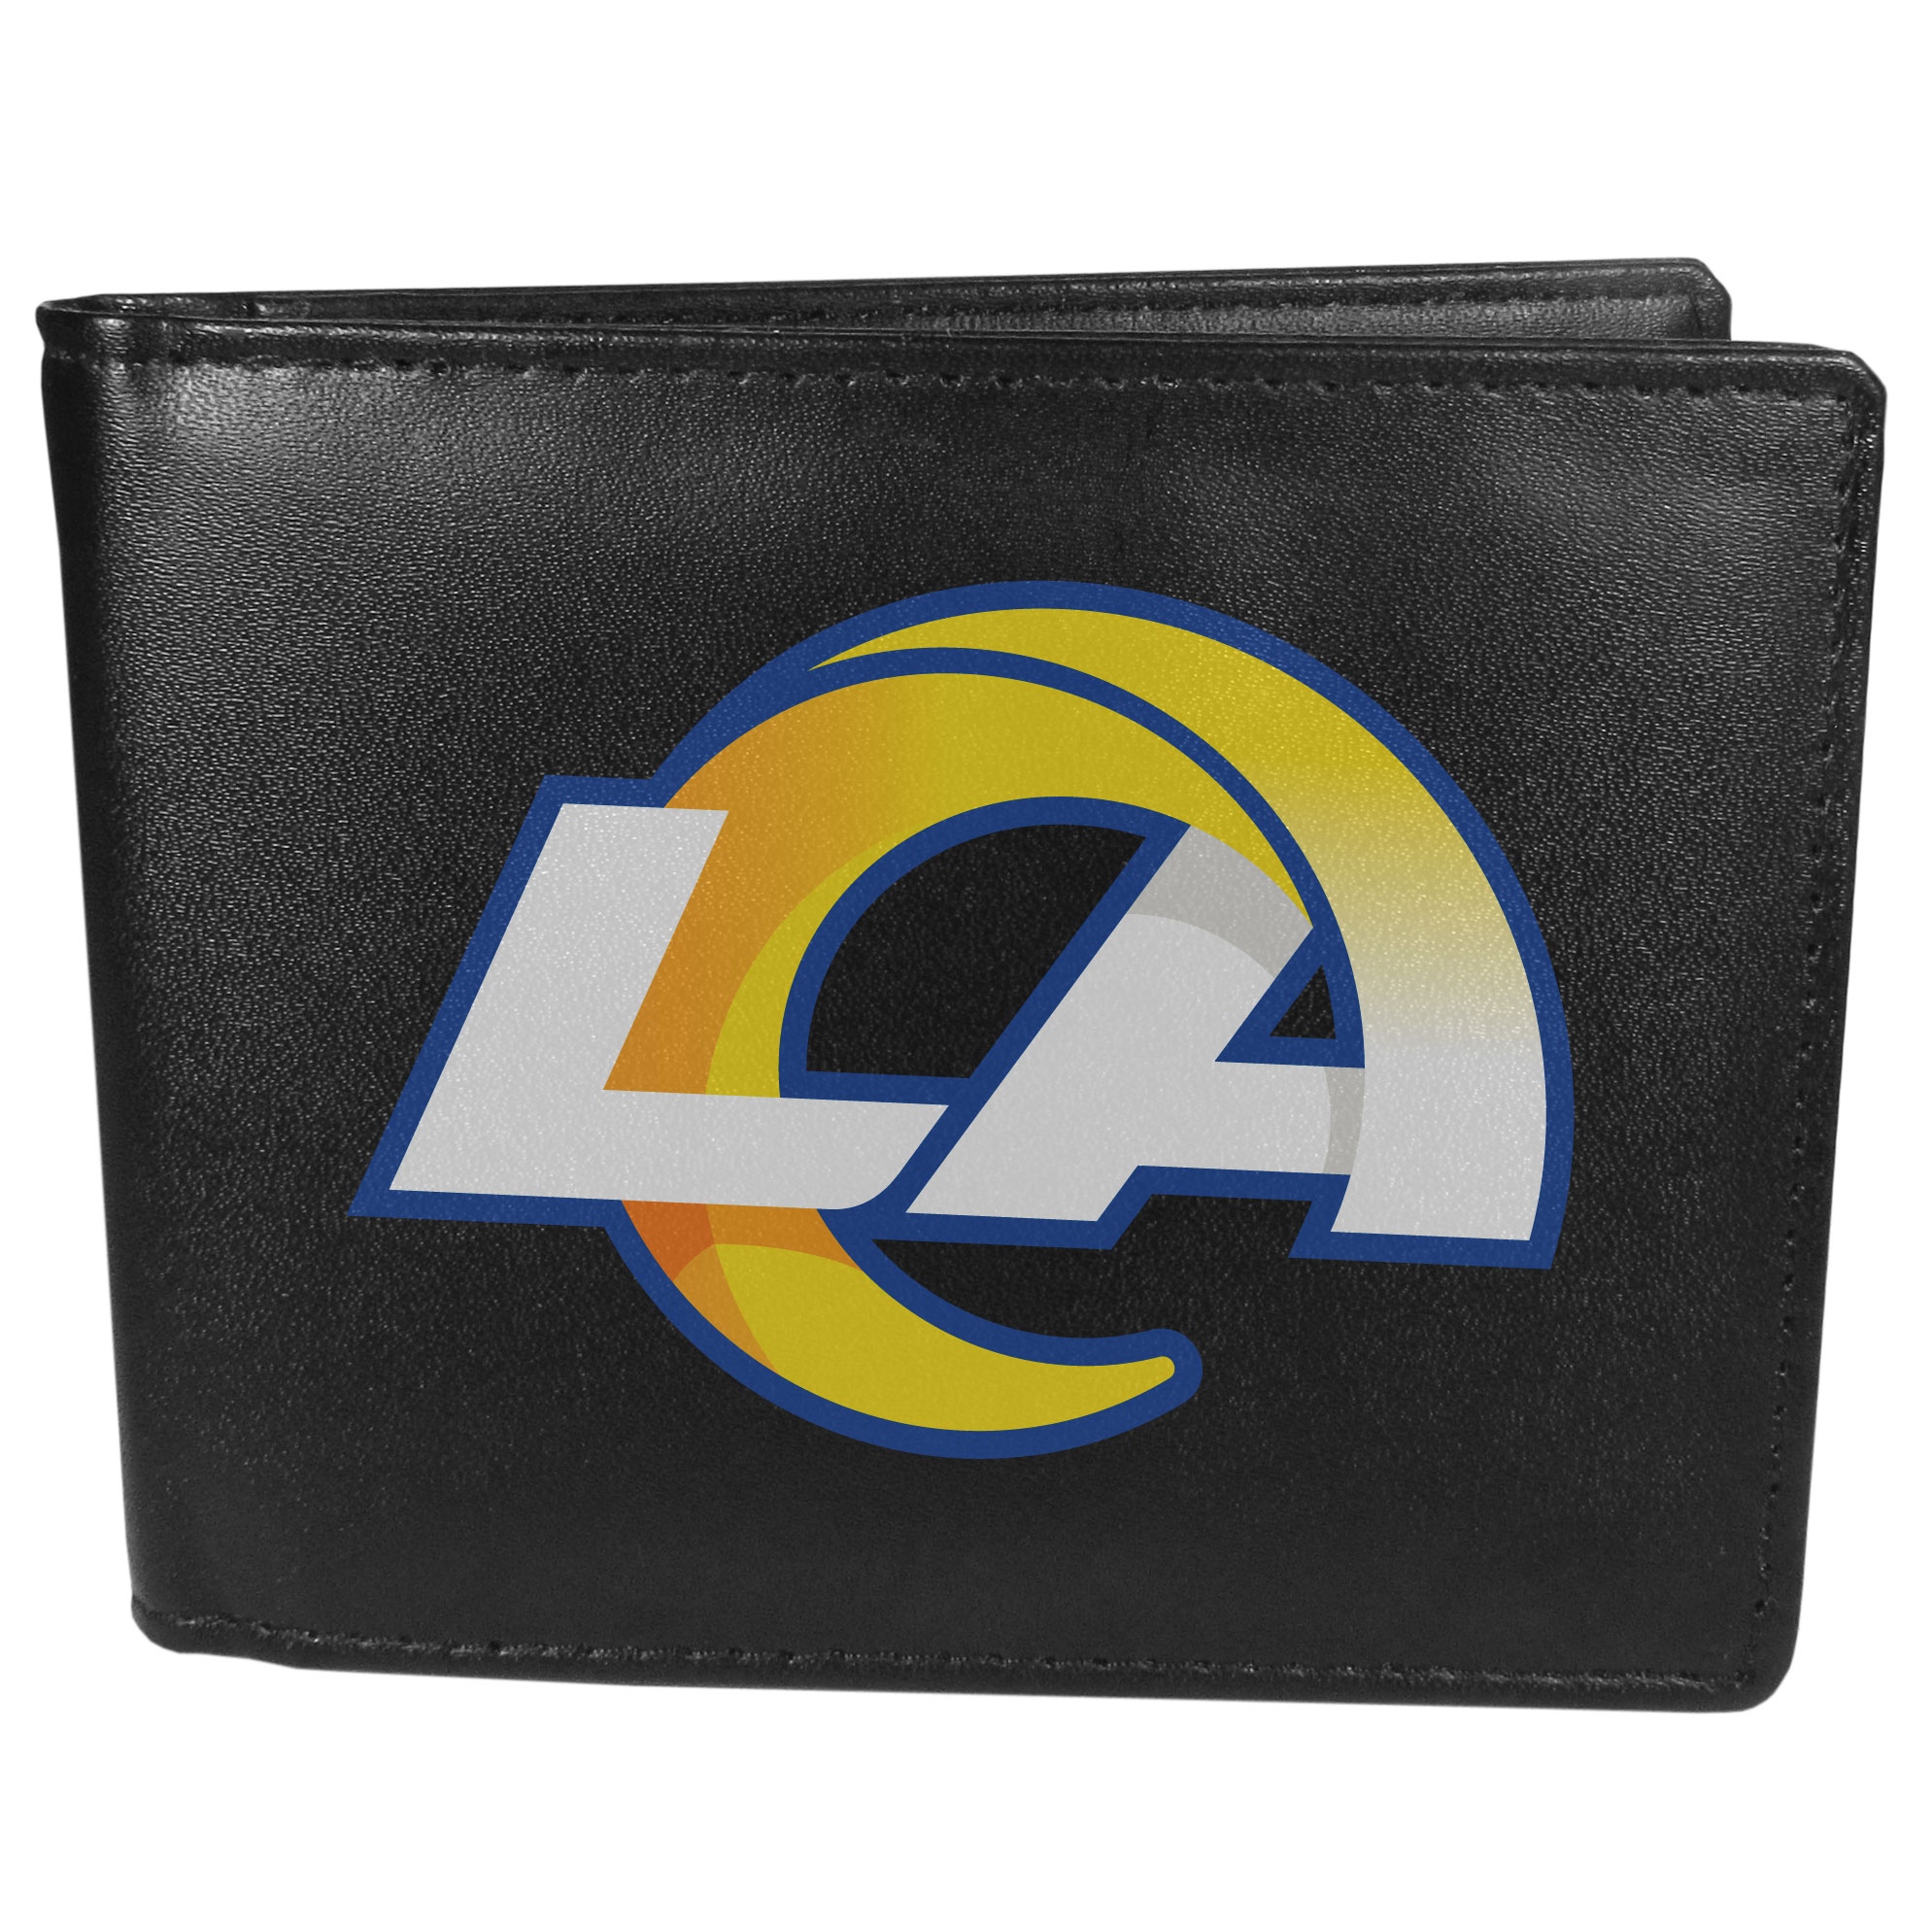 Los Angeles Rams Leather Bi-fold Wallet, Large Logo - Our classic fine leather bi-fold wallet is meticulously crafted with genuine leather that will age beautifully so you will have a quality wallet for years to come. The wallet opens to a large, billfold pocket and numerous credit card slots and has a convenient windowed ID slot. The front of the wallet features an extra large Los Angeles Rams printed logo.